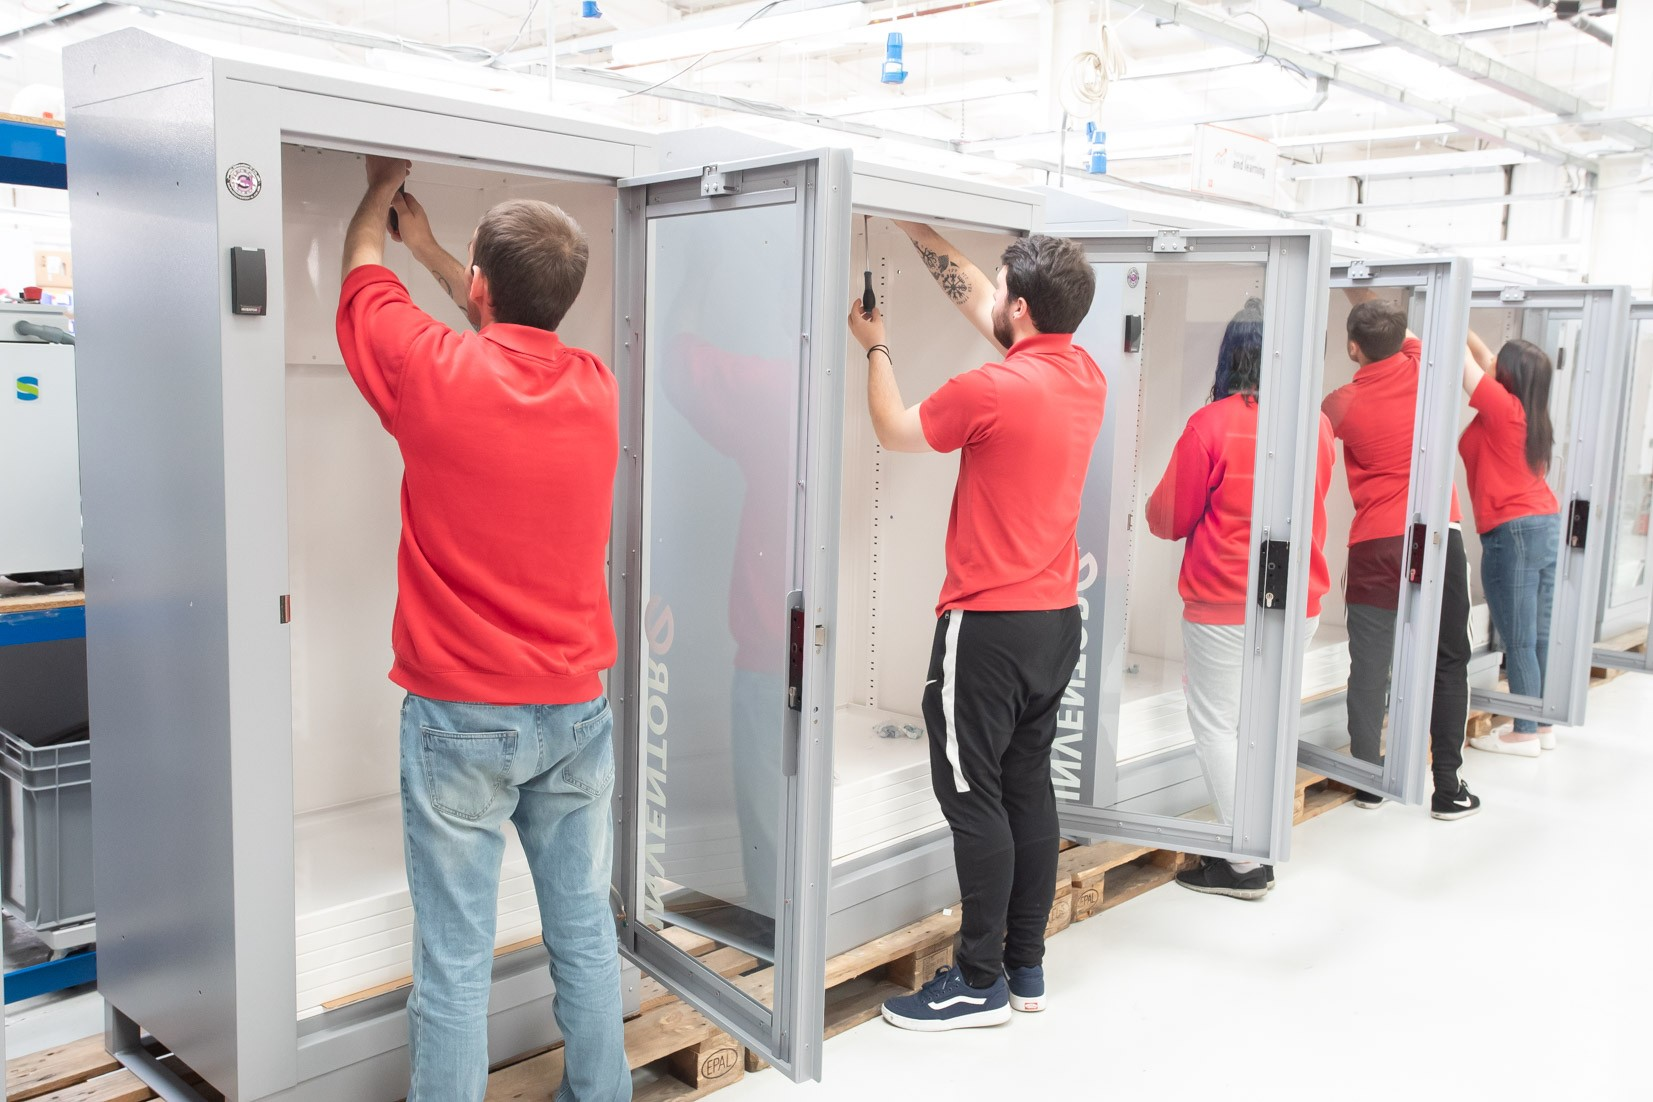 Manufacturing deal helps Inventor-e target £multi-million 'industrial vending' opportunity » inventore 9 » PP Control & Automation